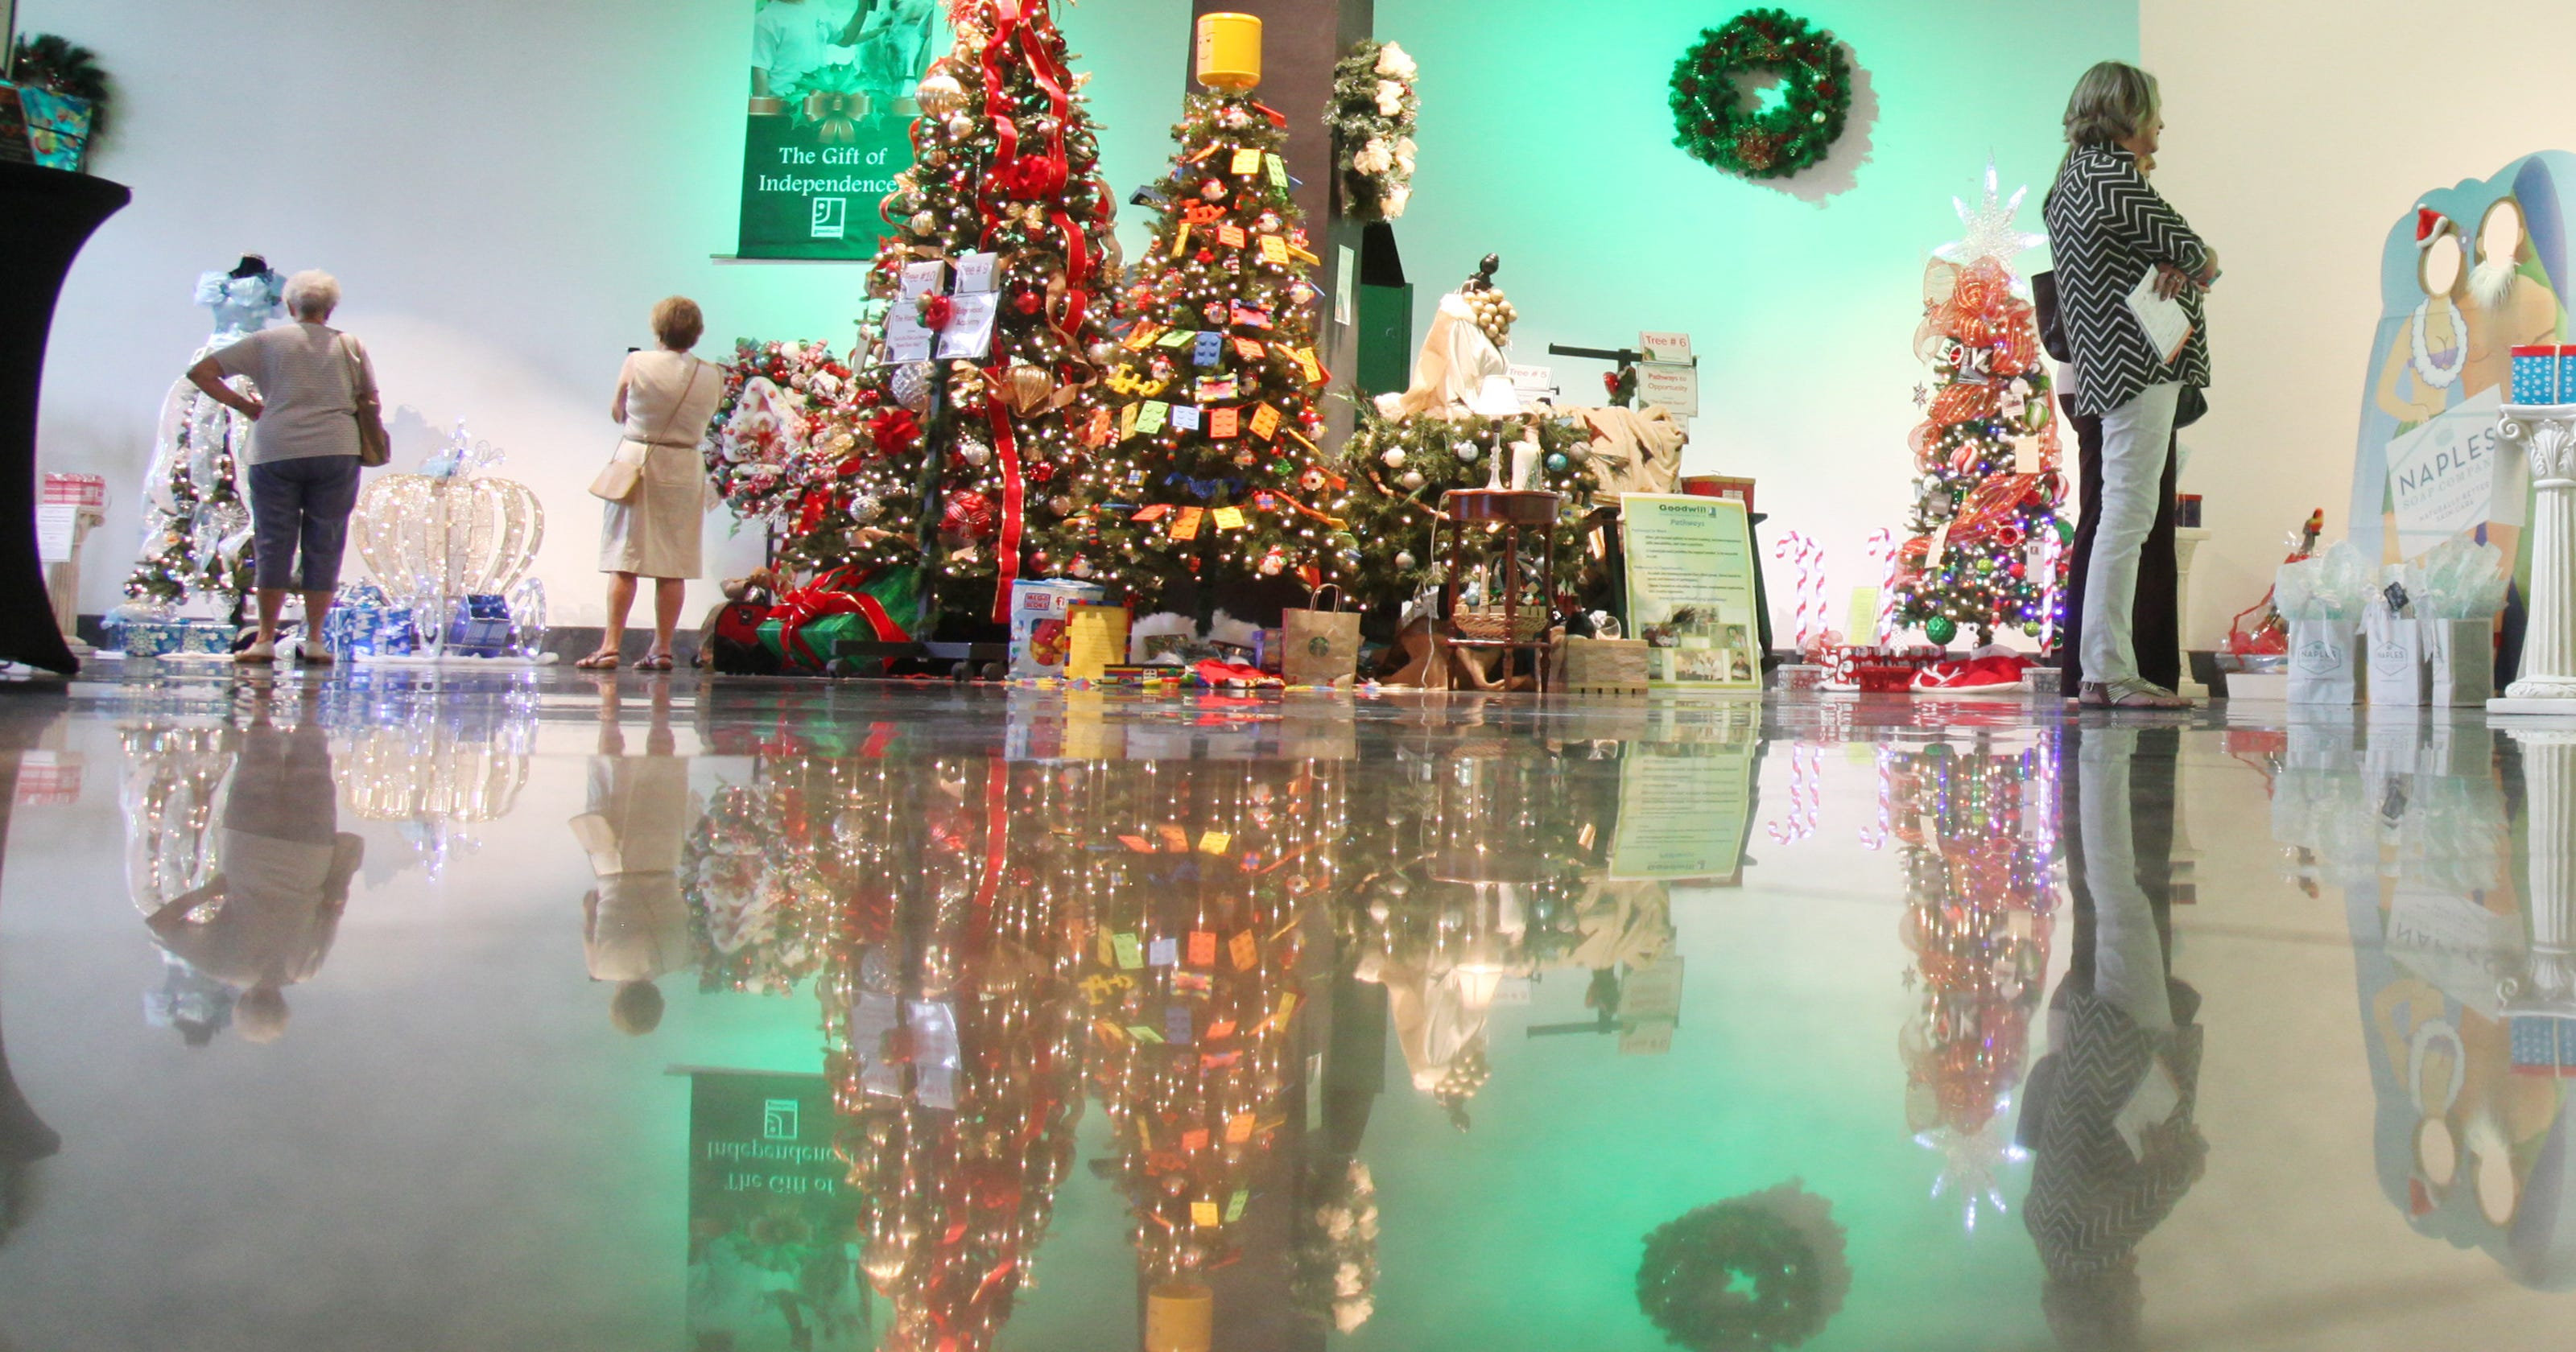 Christmas Event In Florida.Holiday Events In Southwest Florida For Dec 2 11